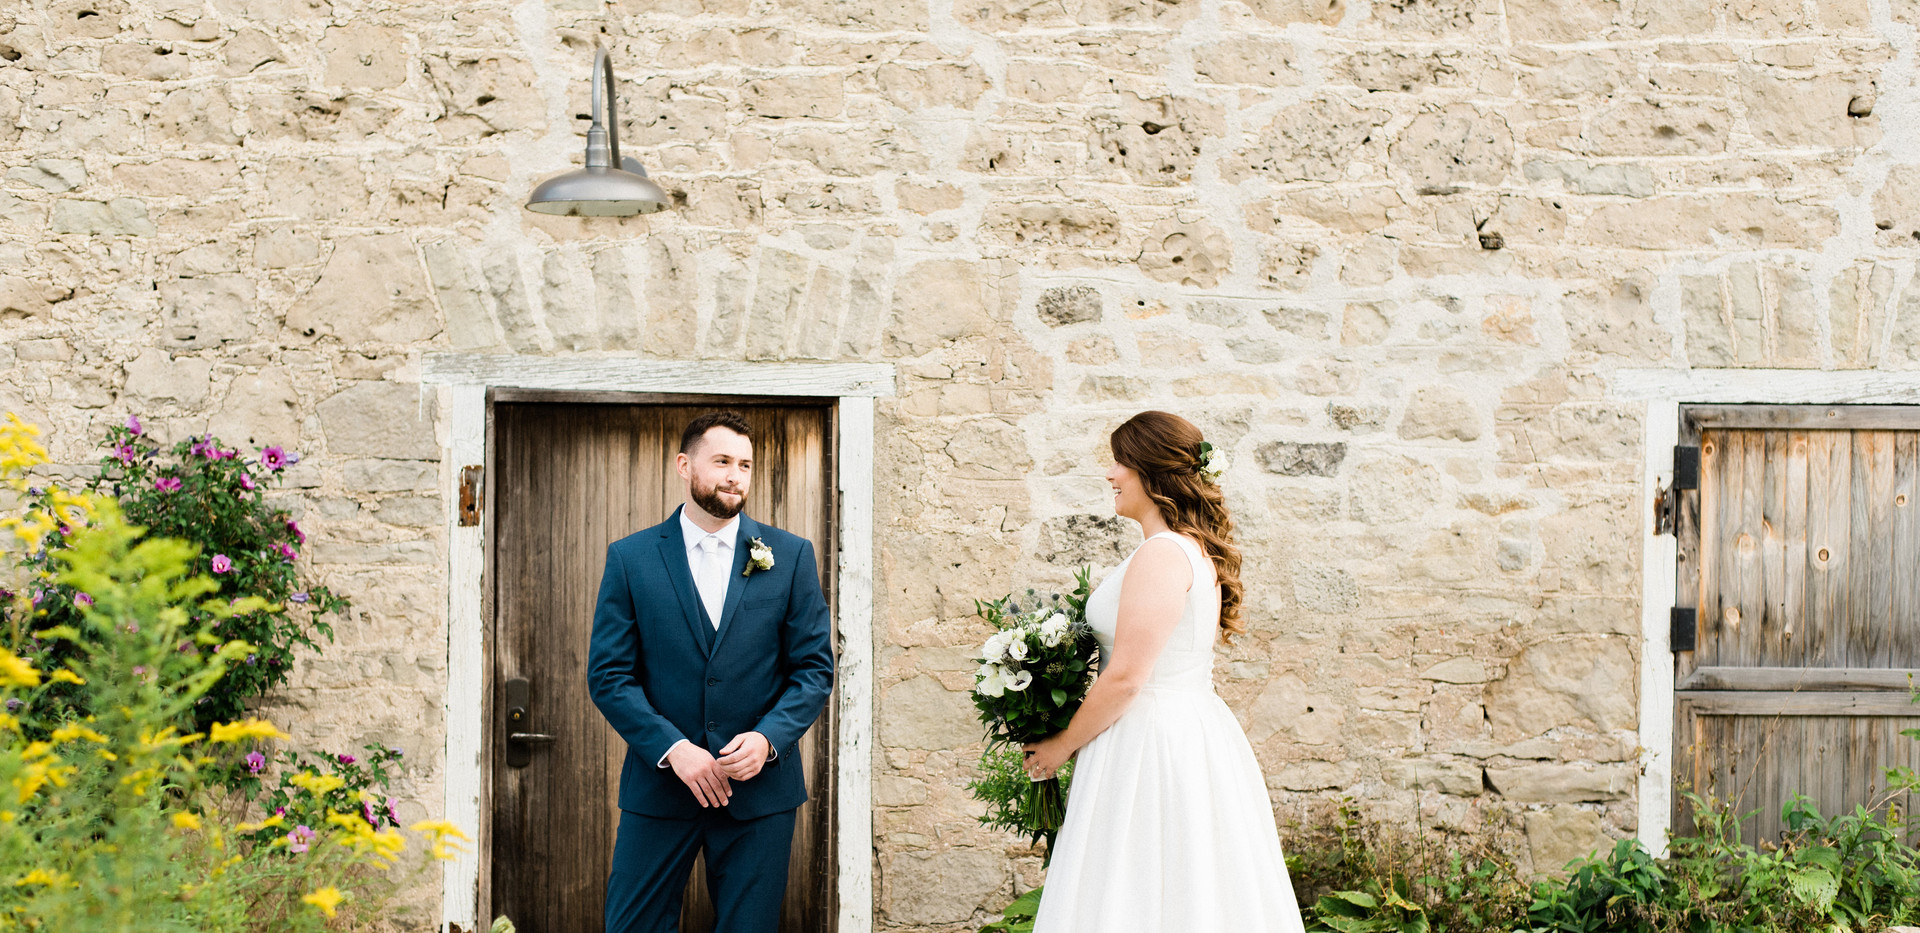 the moment the groom gets his first look at the bride holding her bouquet in her wedding dress next to white stone barn